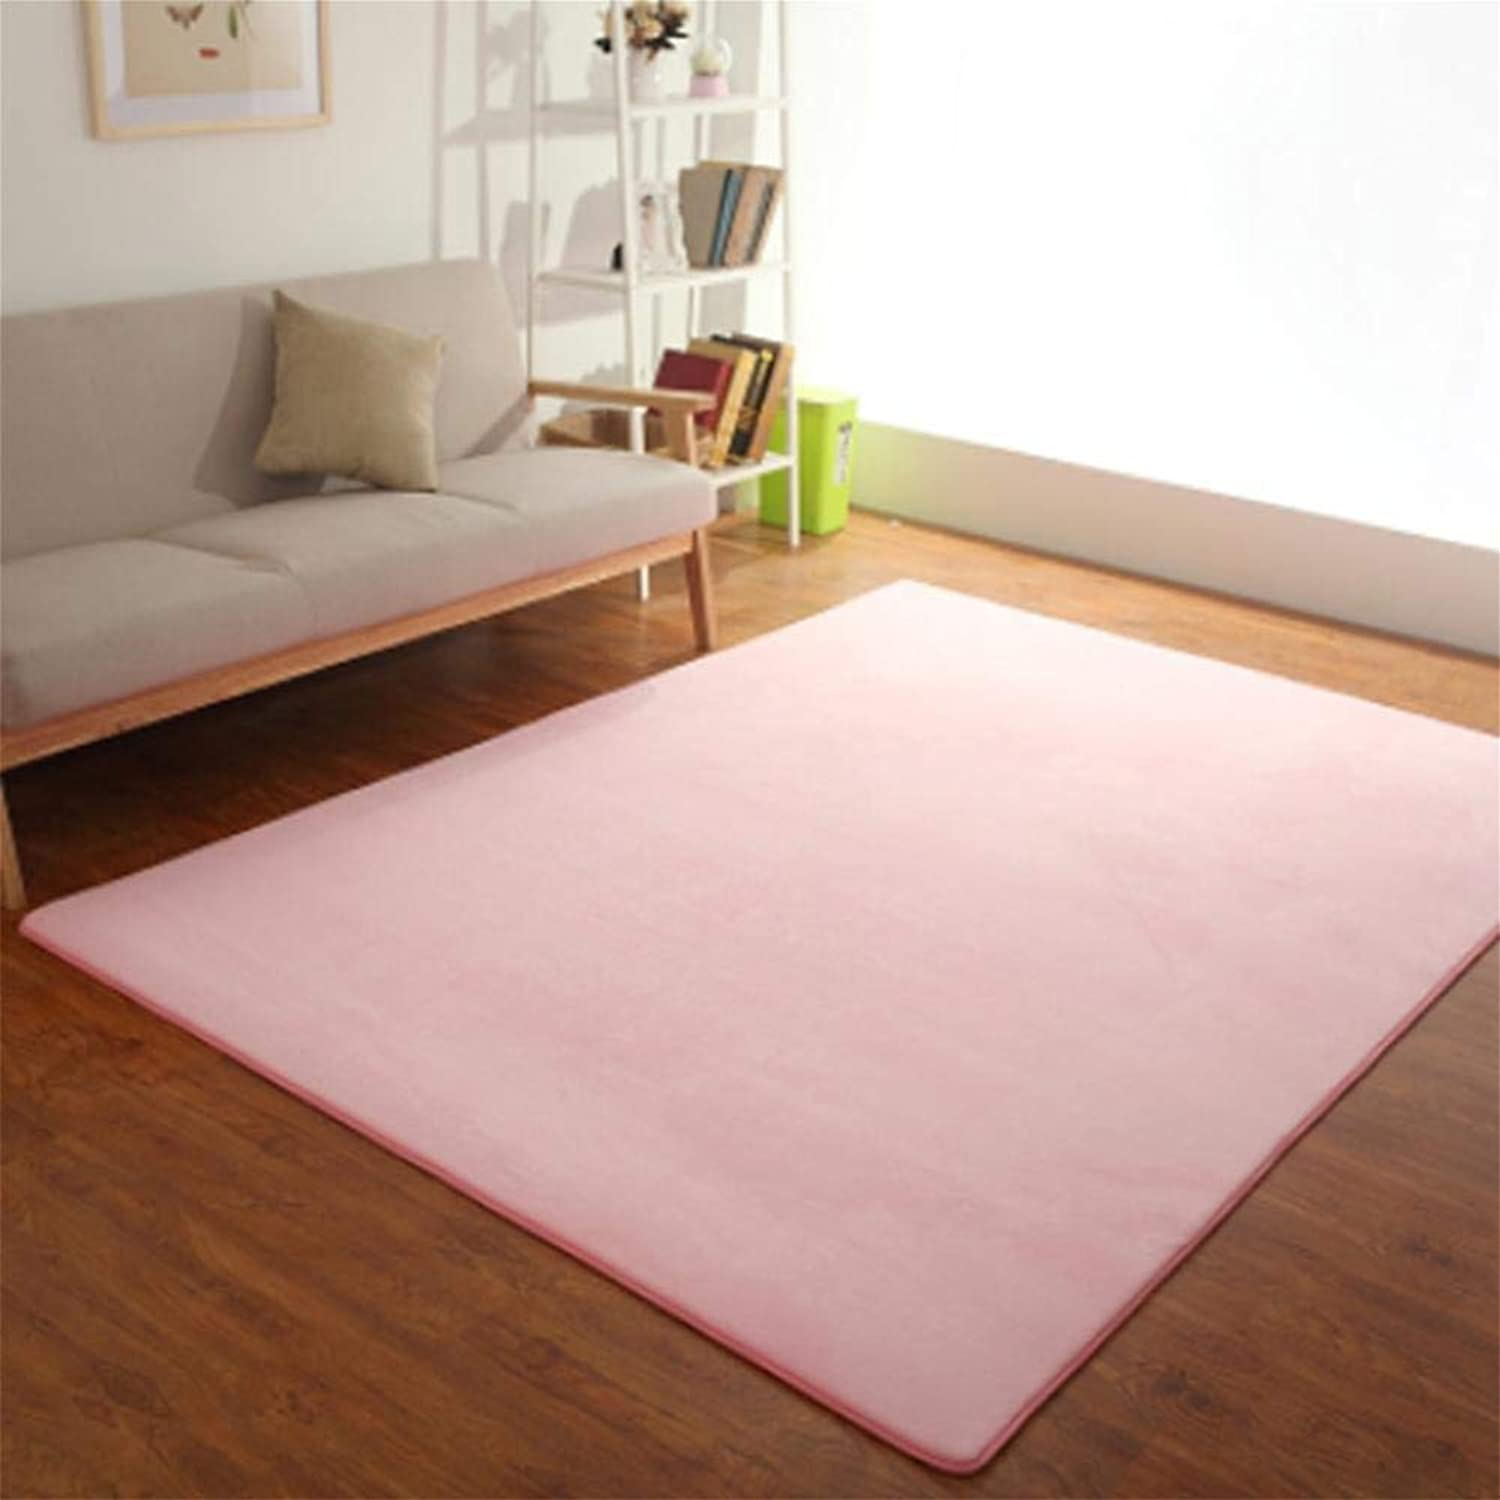 Royare Home Decorations mat Short Coral Velvet Carpet Full Home Tatami Living Room Coffee Table Bedside Floor mats can be Hand-Washed, 1.6x0.8 Meters, Pink